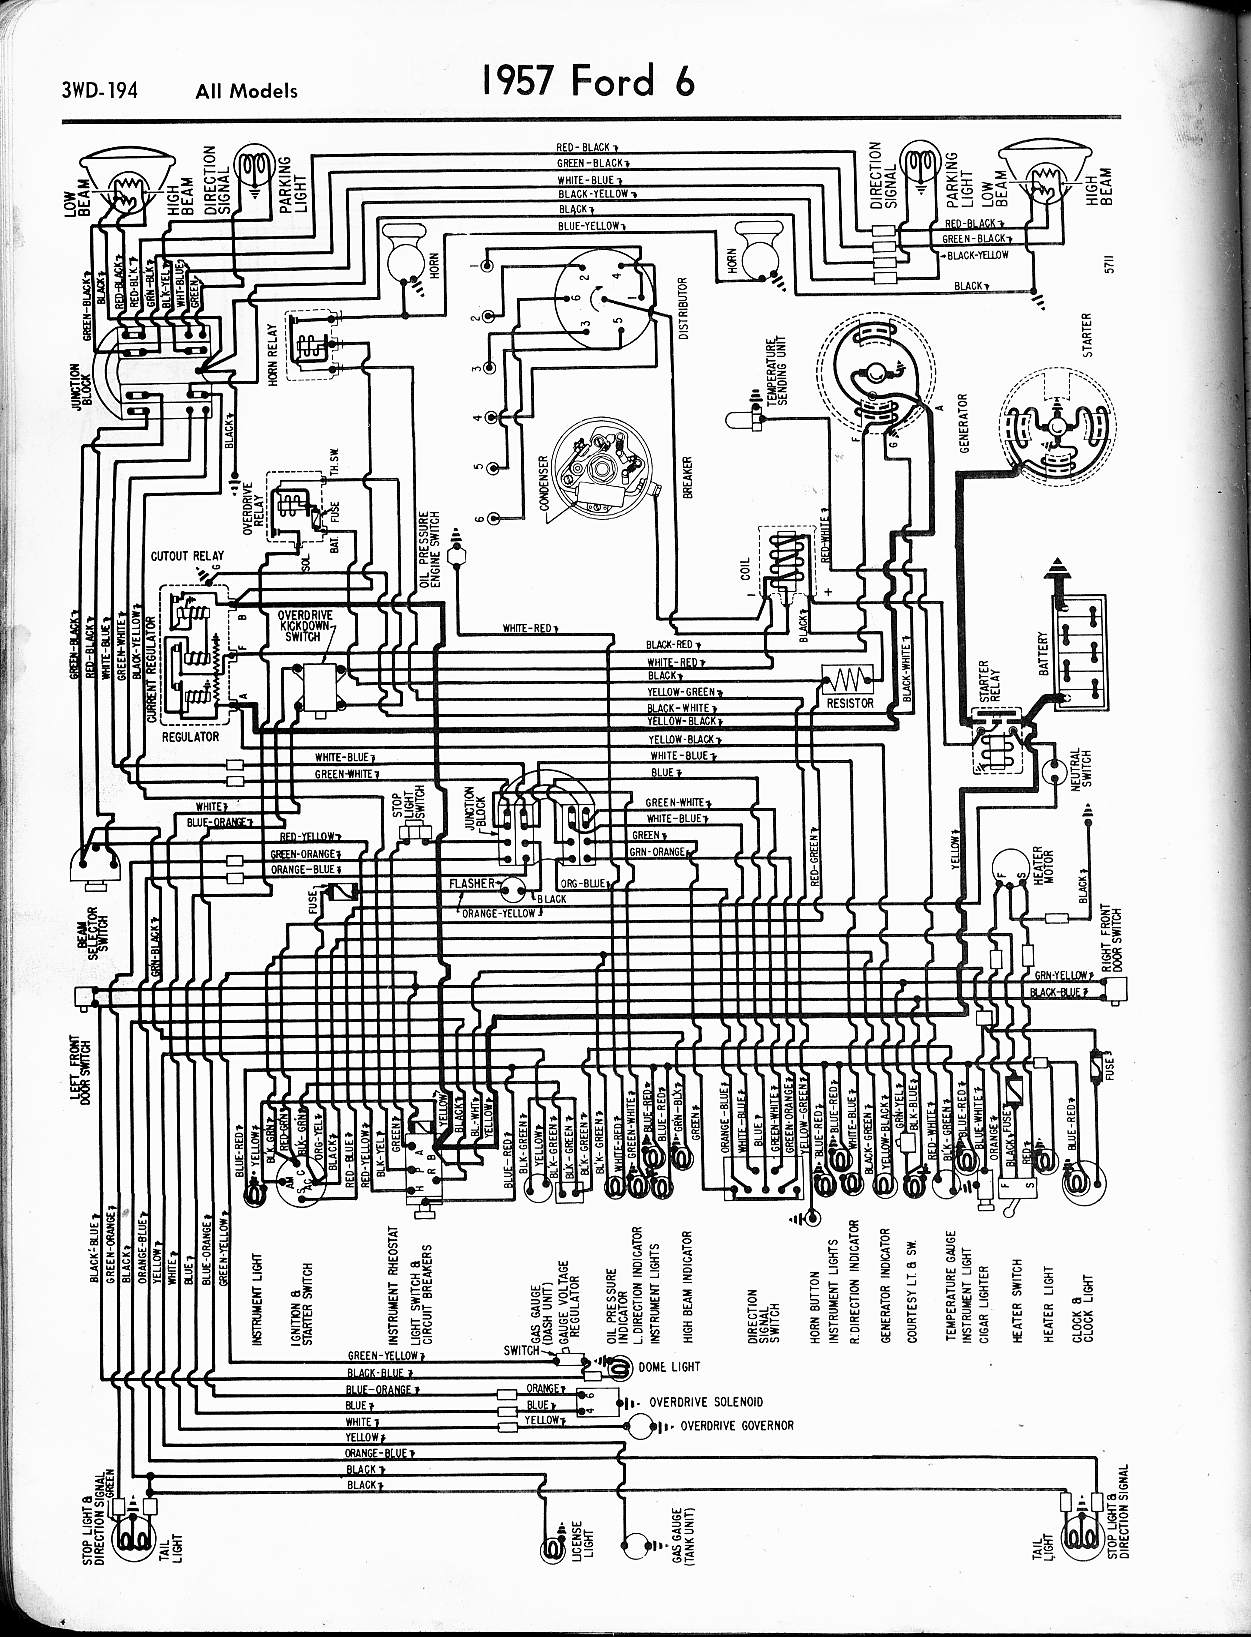 57 65 Ford Wiring Diagrams Crown Forklift Diagram 1957 6 Cyl All Models